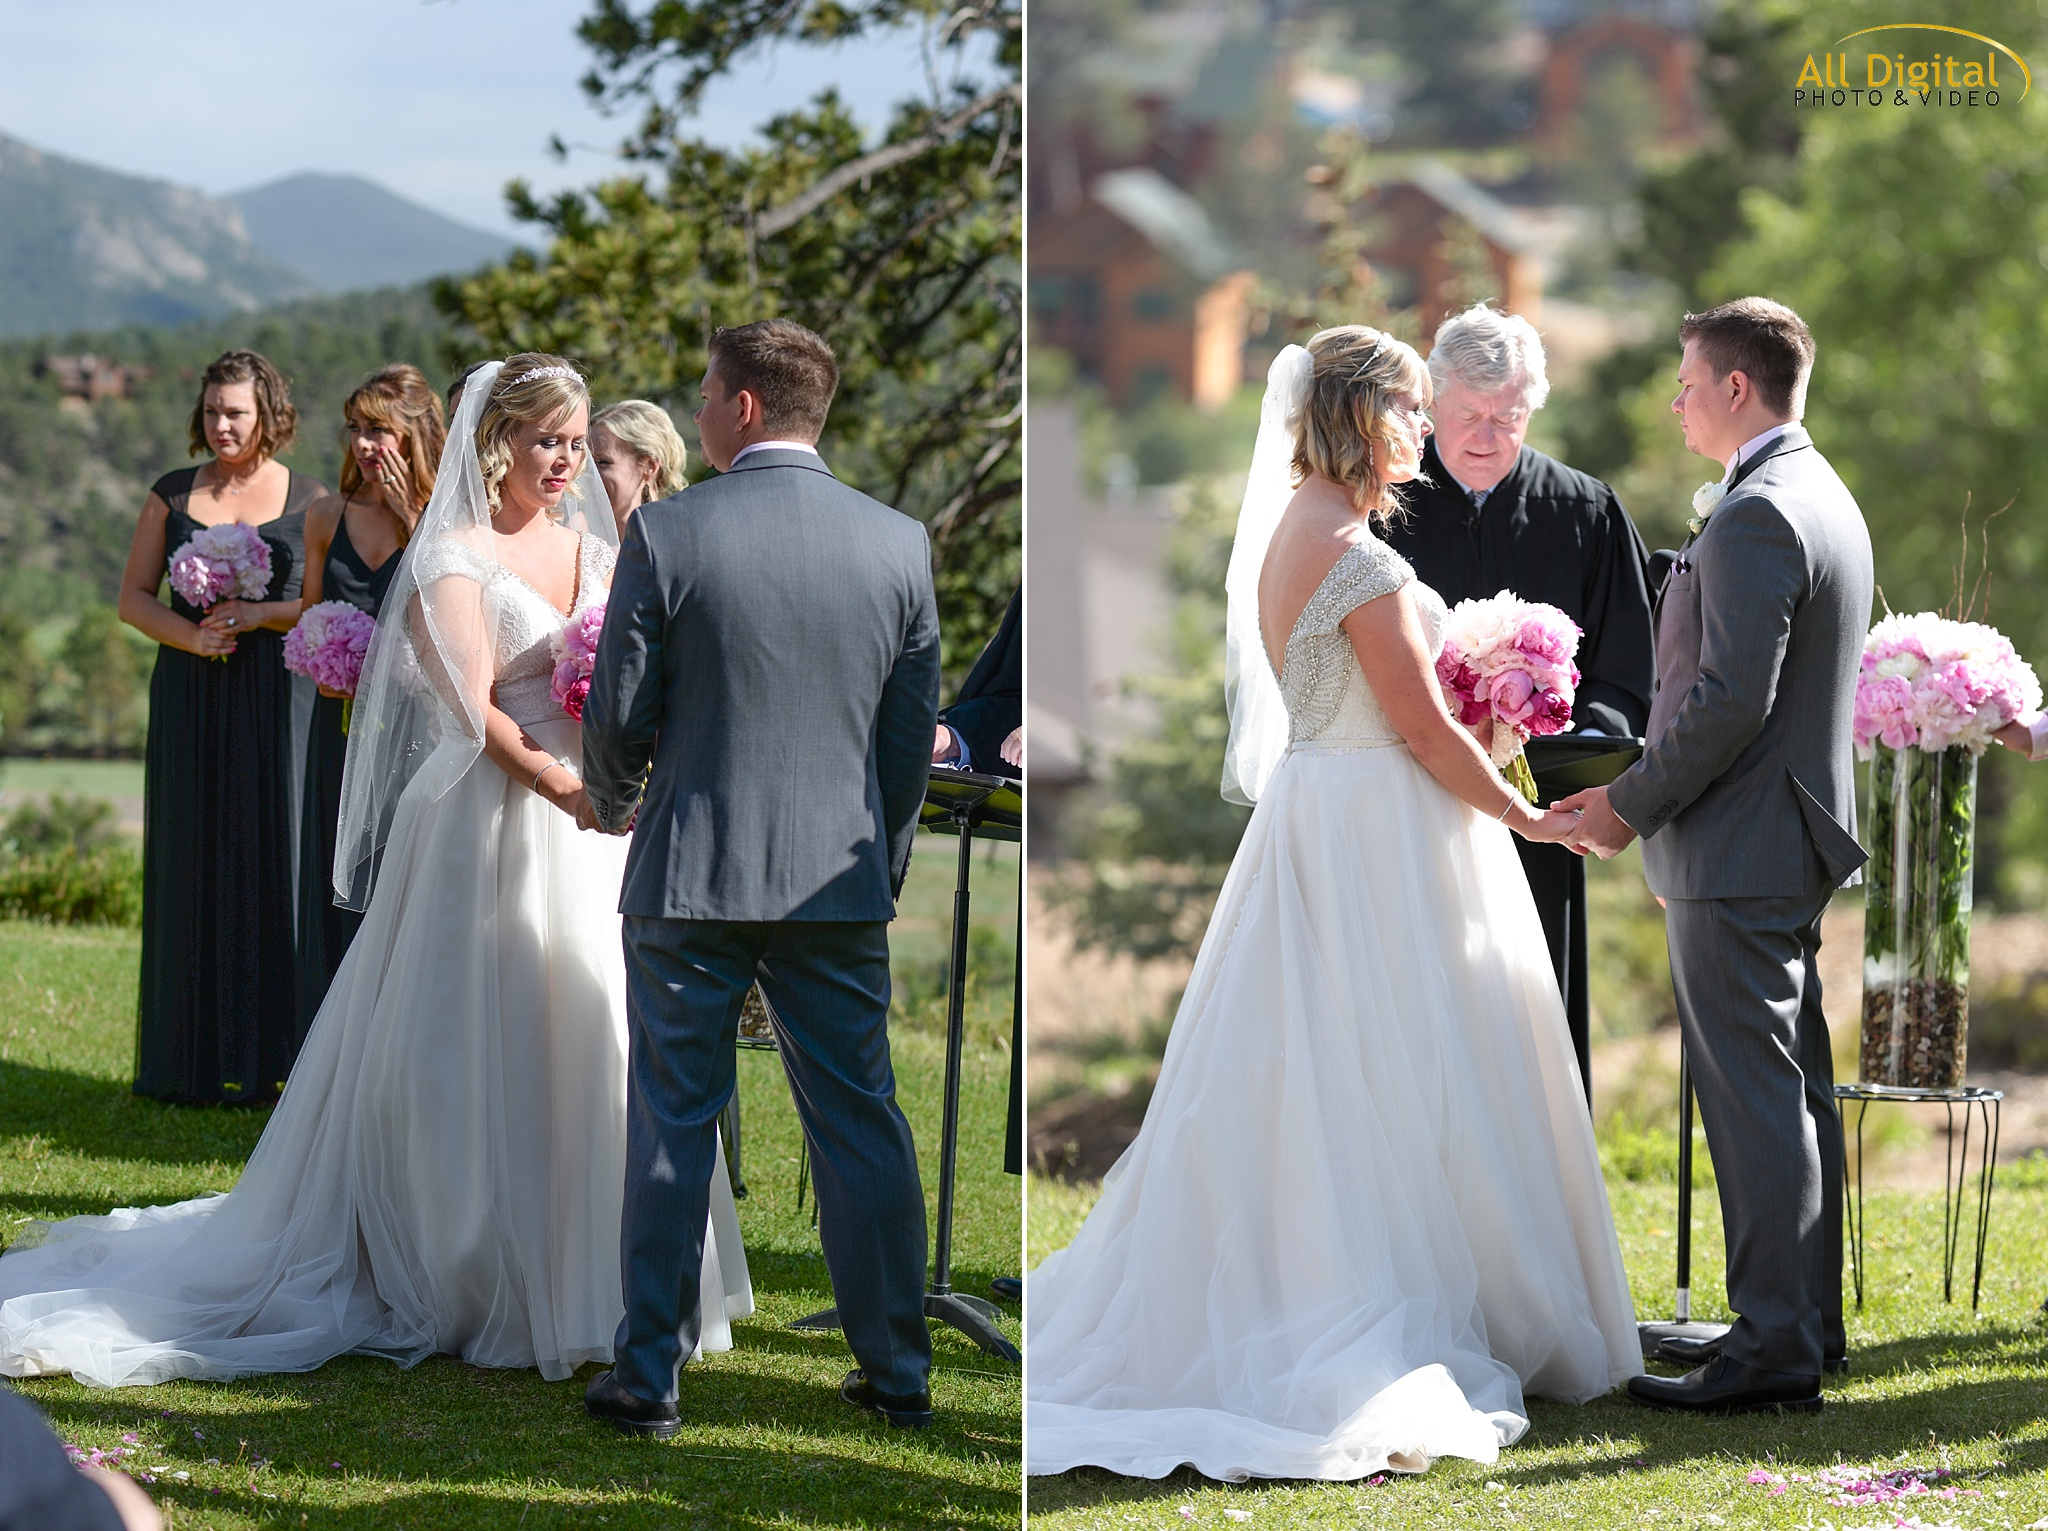 Alison & Brian's Wedding Ceremony at the Stanley Hotel in Estes Park, Colorado.